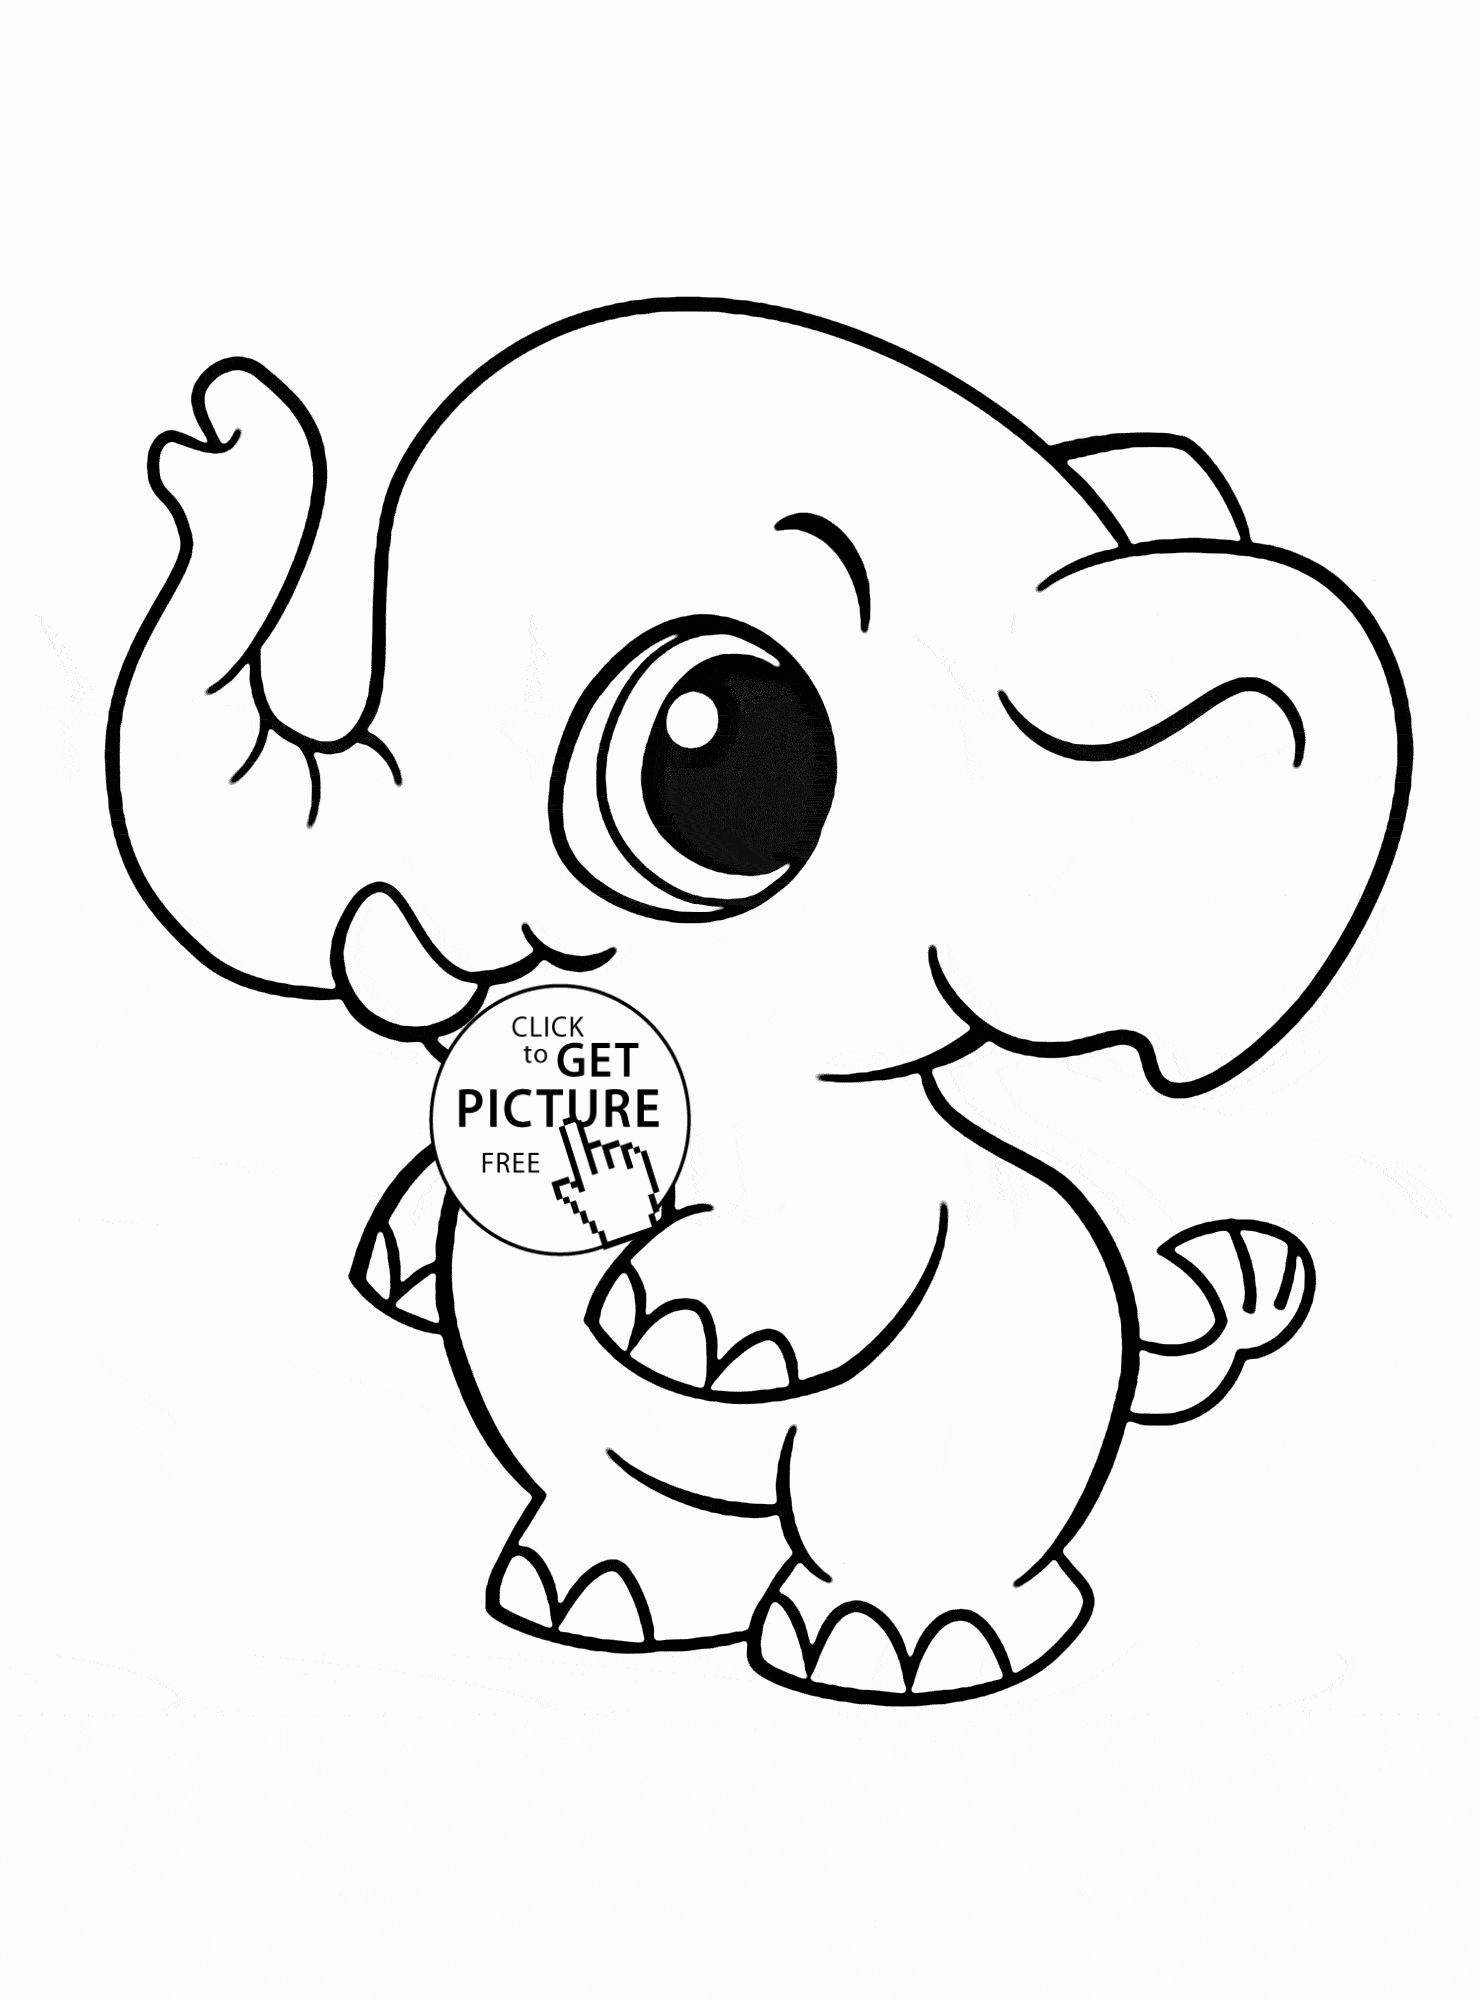 Coloring Pages Kawaii Animals Unique Funny Animals Coloring Page Cute Dog Coloring Page In 2020 Zoo Animal Coloring Pages Unicorn Coloring Pages Elephant Coloring Page